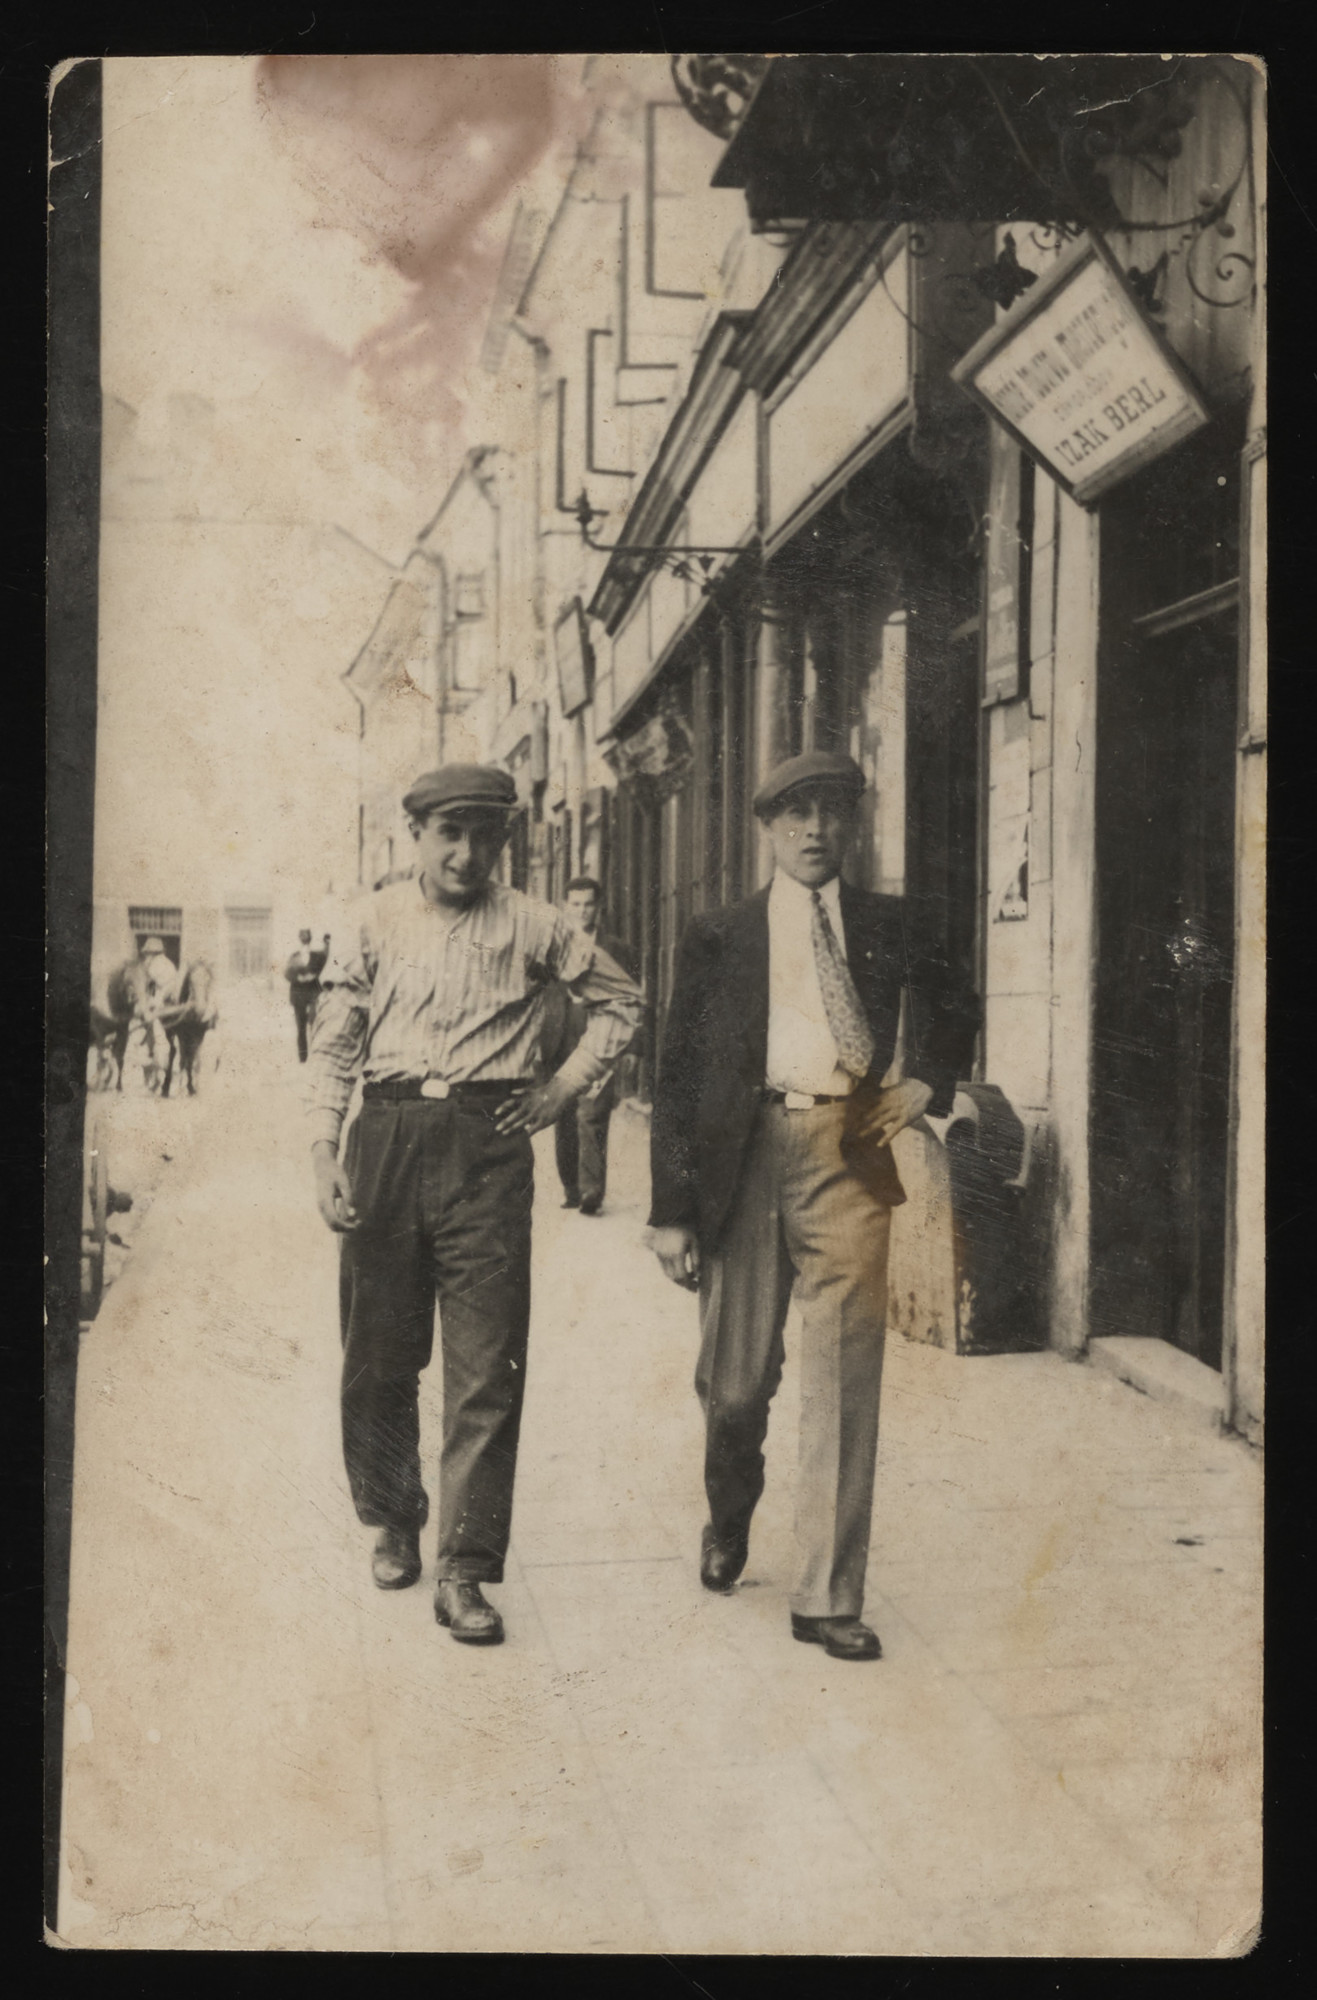 Two Jewish youths walk along a street in Rzeszow.  Pictured are Israel Mayer Stub and Yossel Weiss, friends who are visiting from Kolbuszowa.